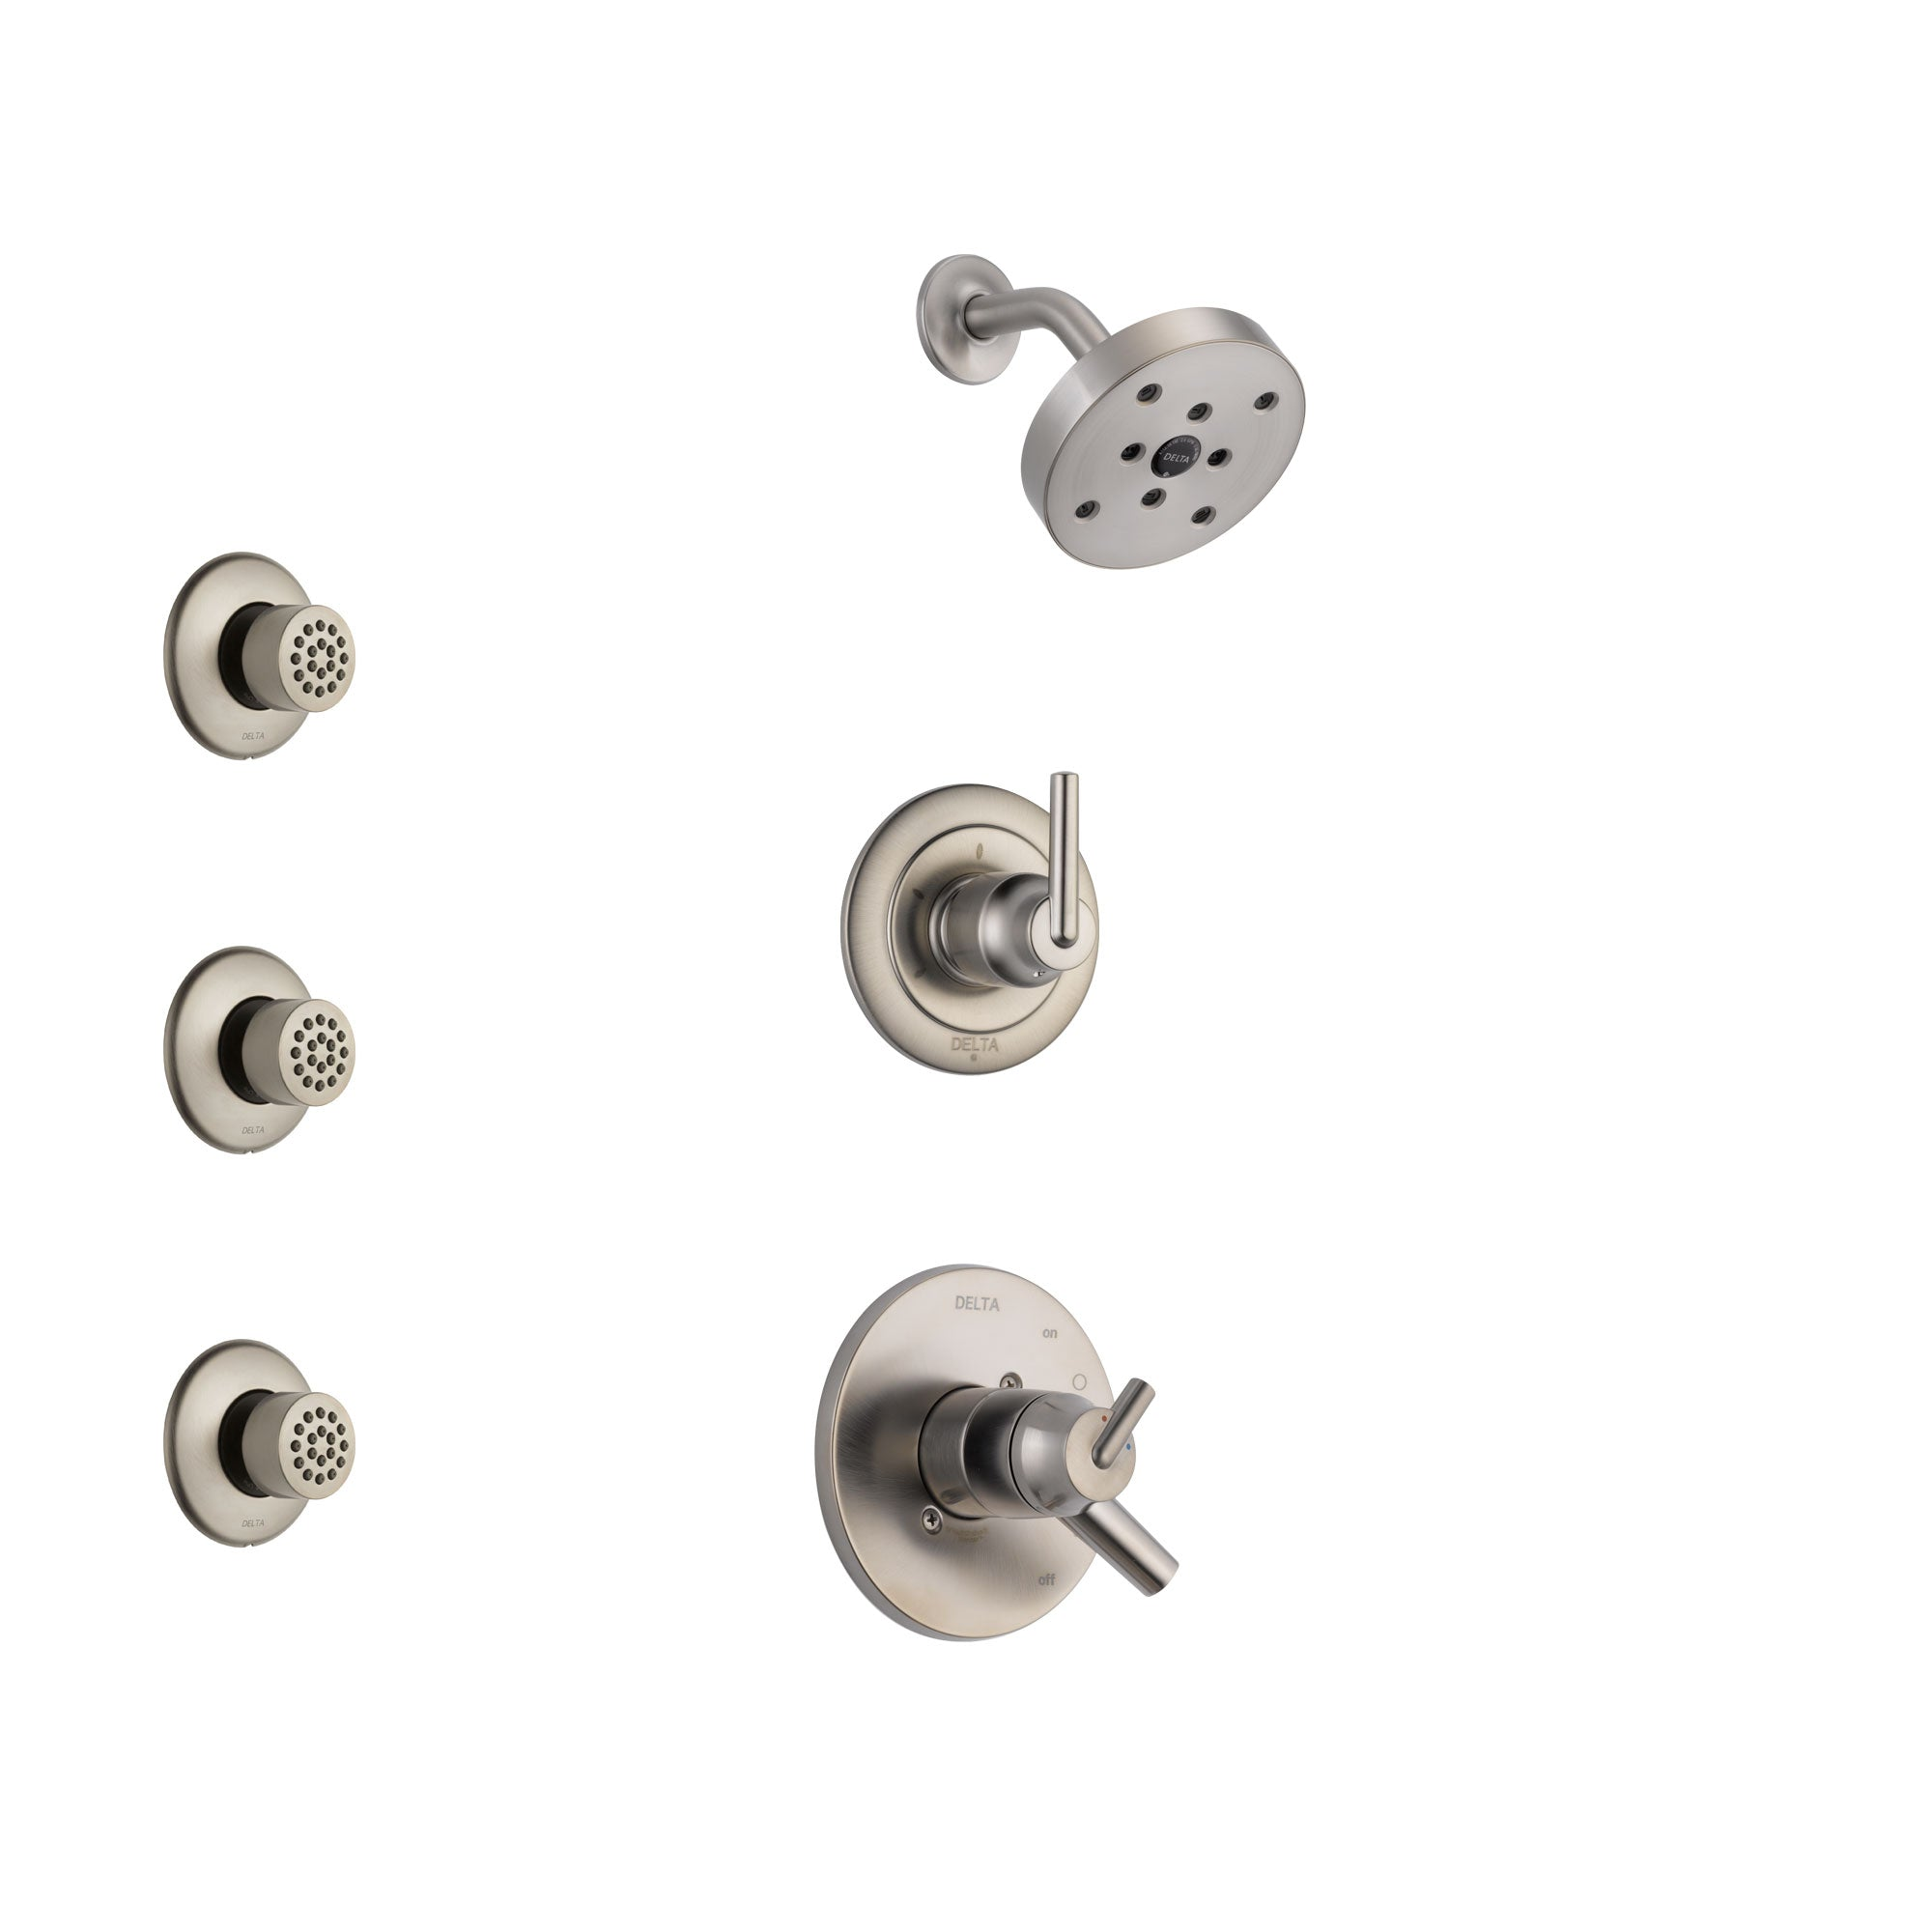 Delta Trinsic Stainless Steel Finish Shower System with Dual Control Handle, 3-Setting Diverter, Showerhead, and 3 Body Sprays SS172591SS2